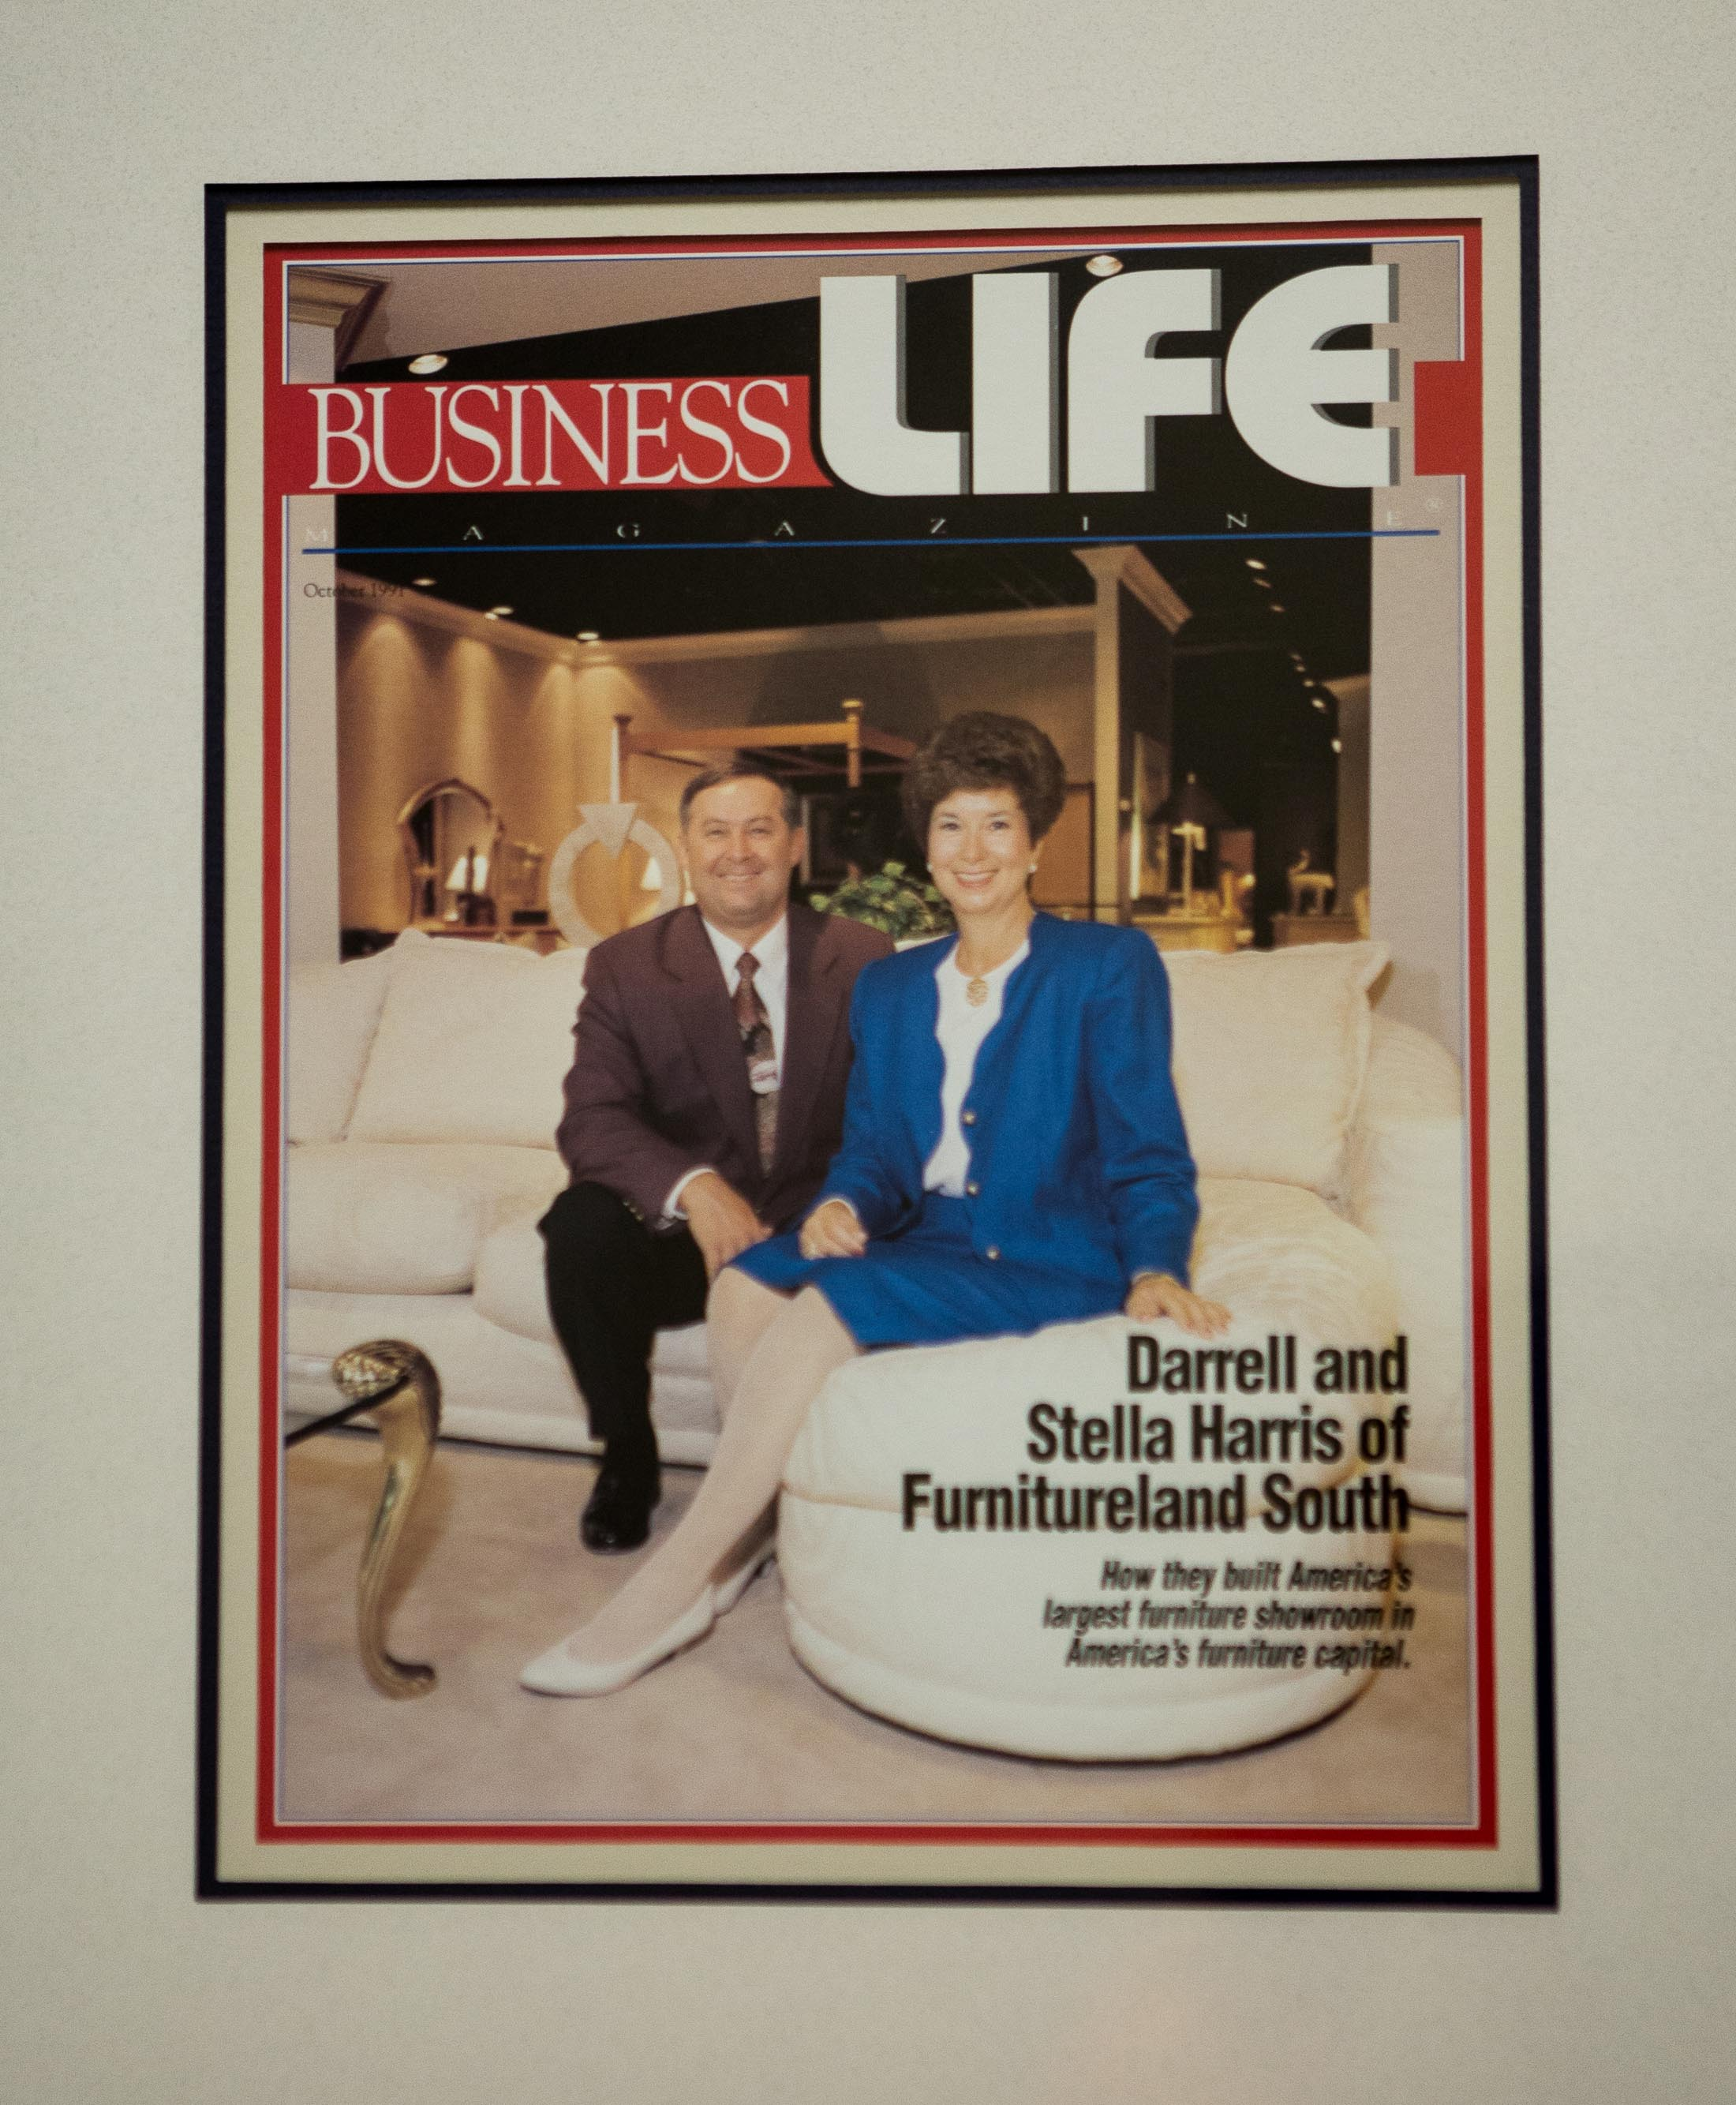 Business life image